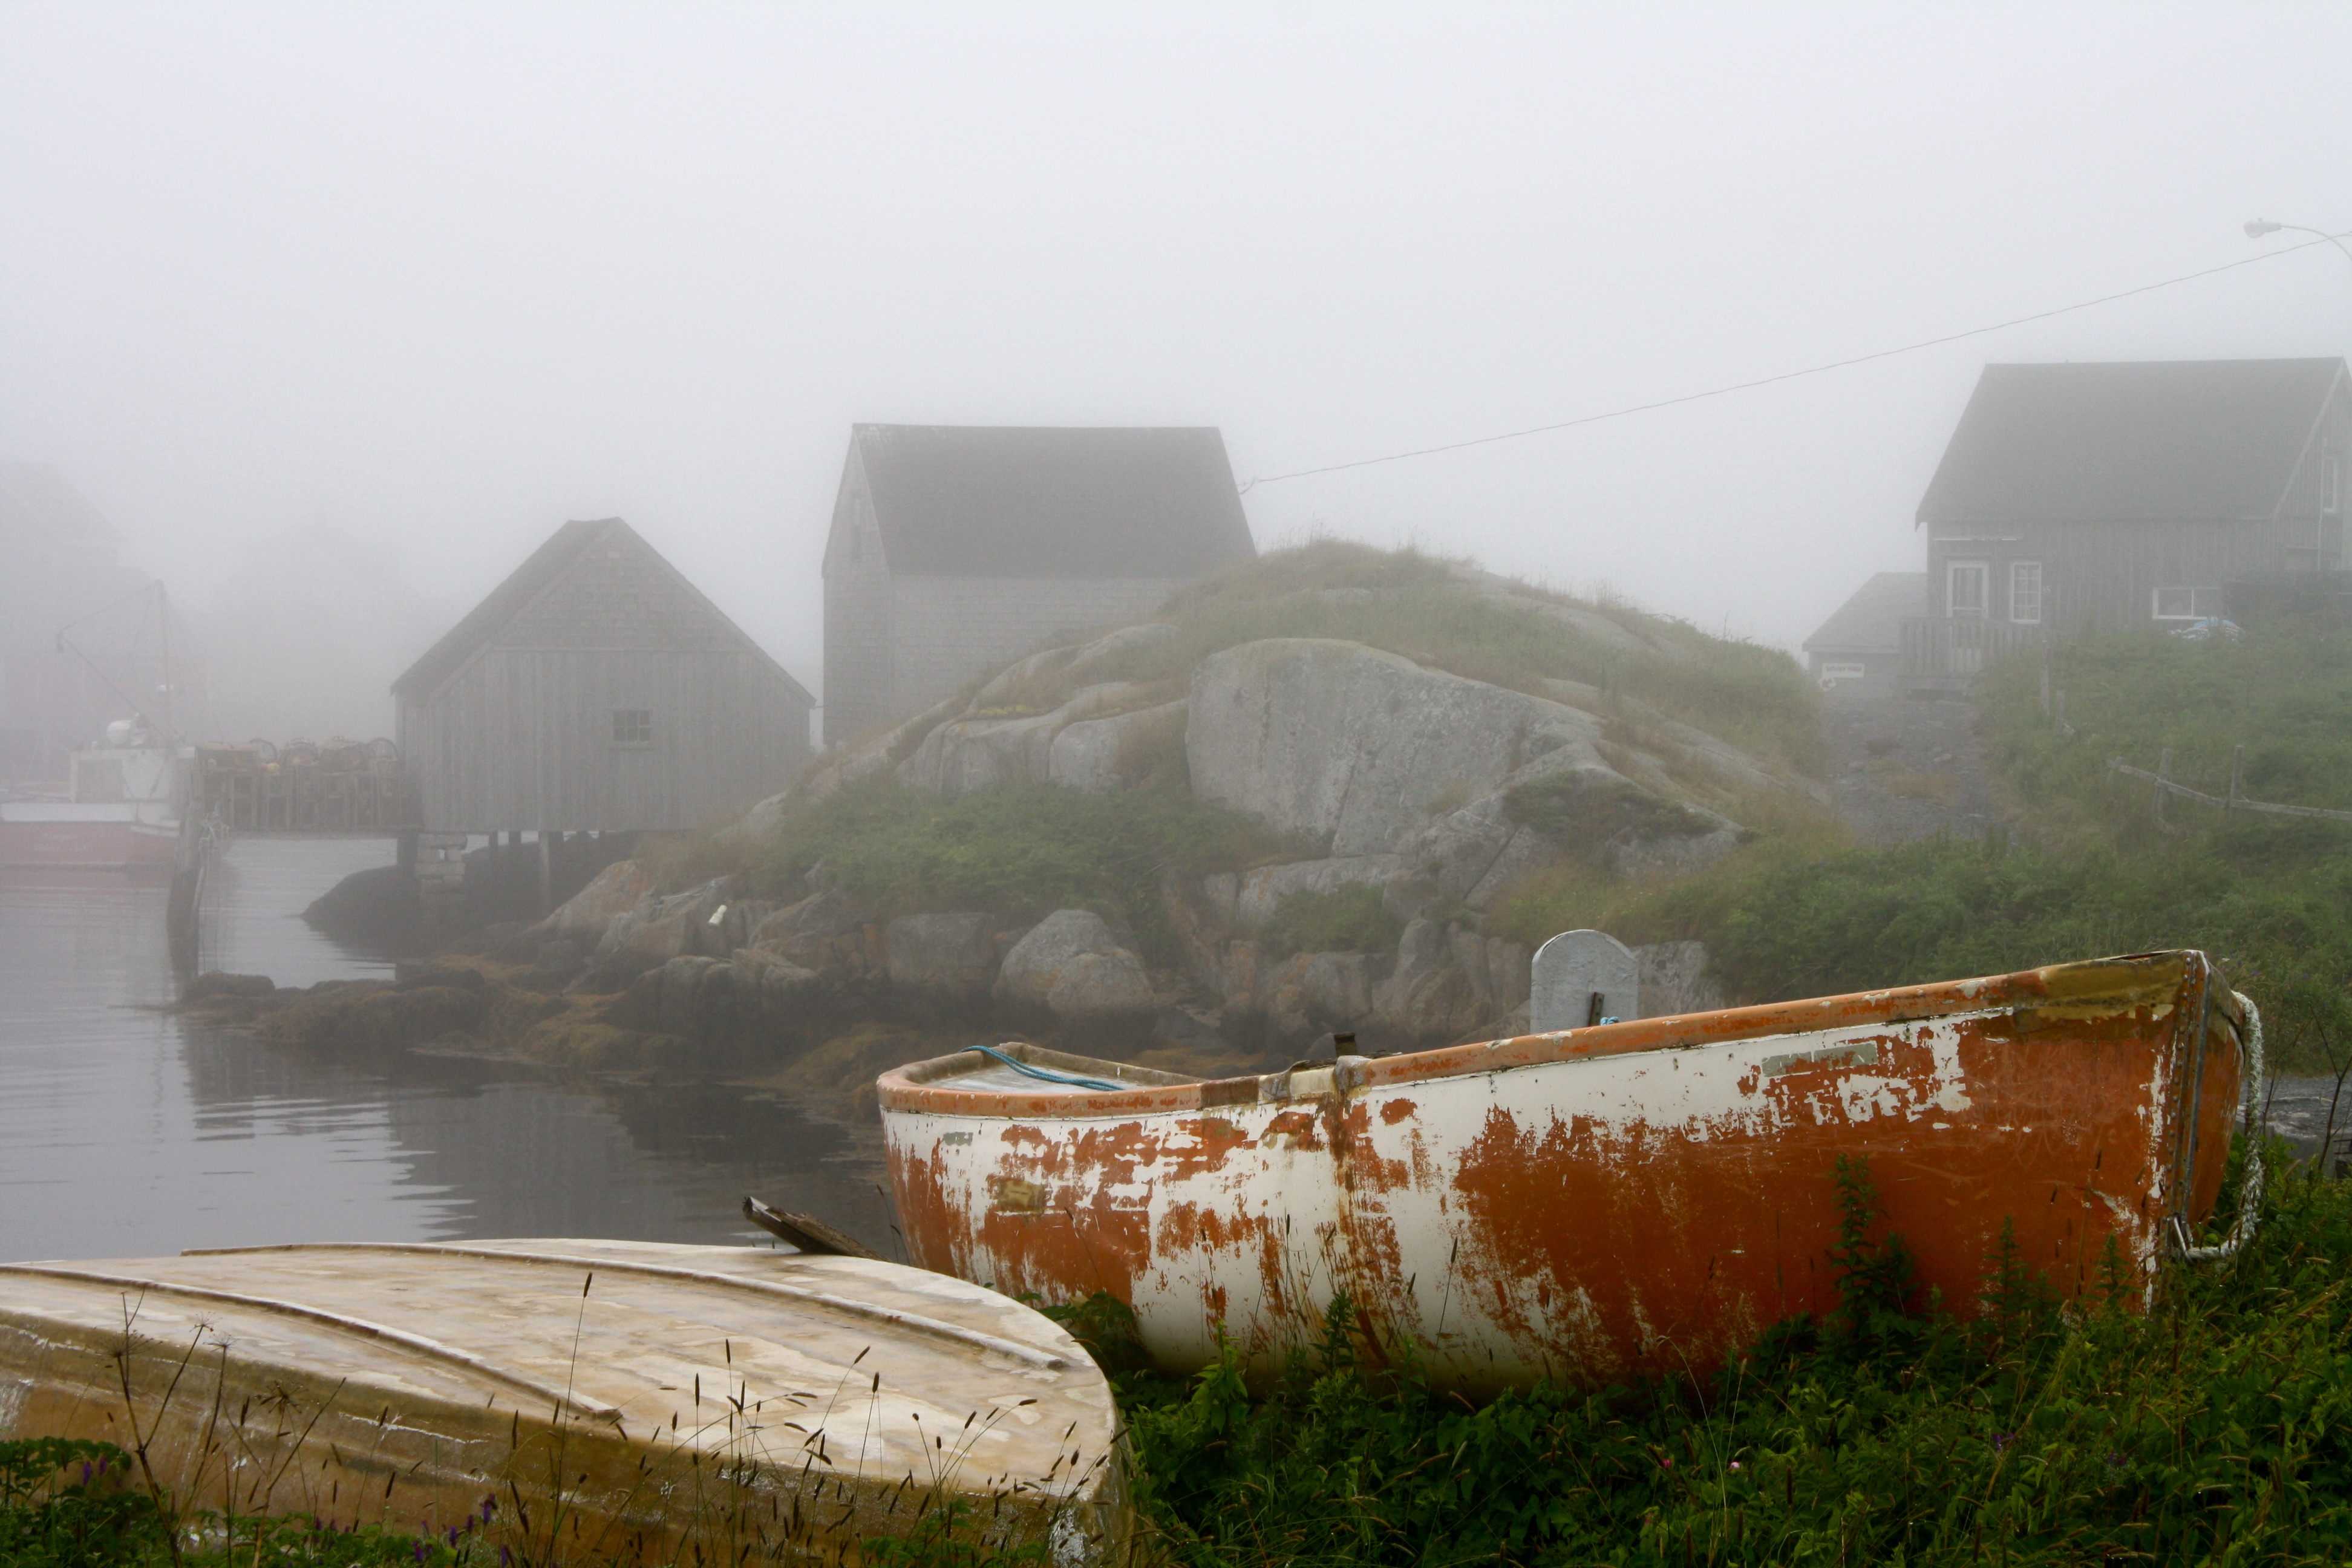 Old boats photo